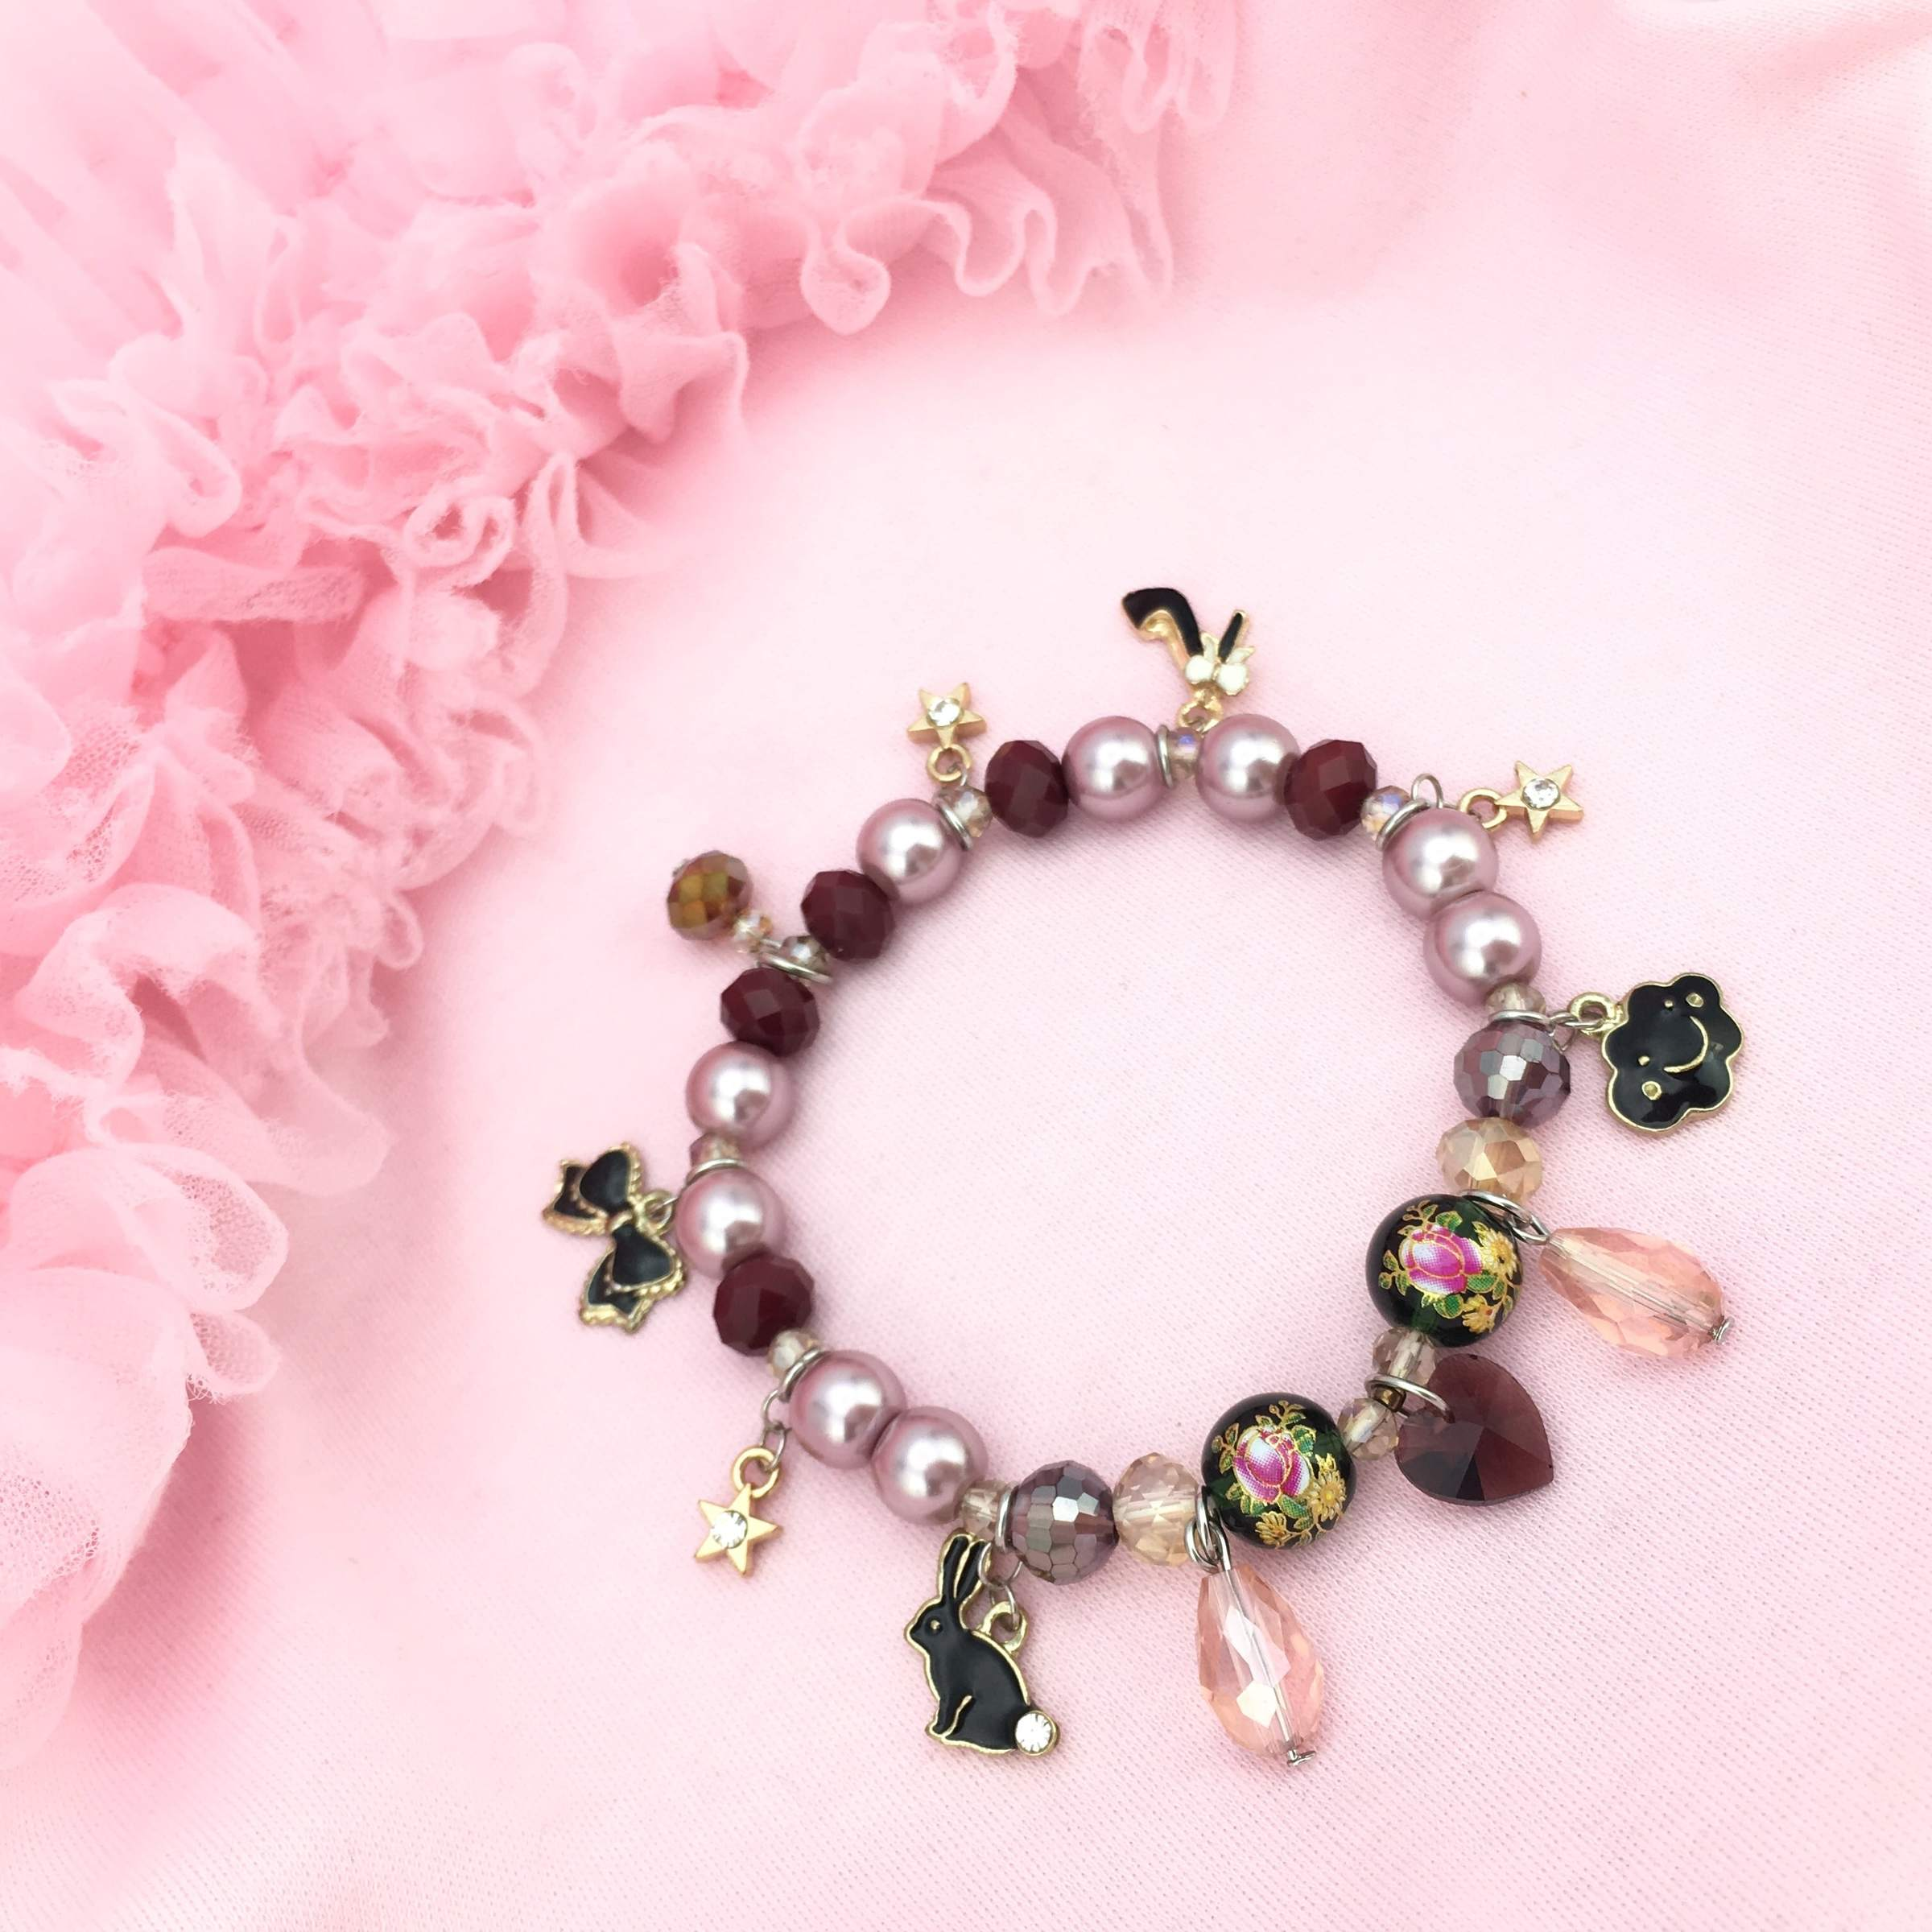 Whimsical style Delilah Charm Bracelet with Adorable Charms